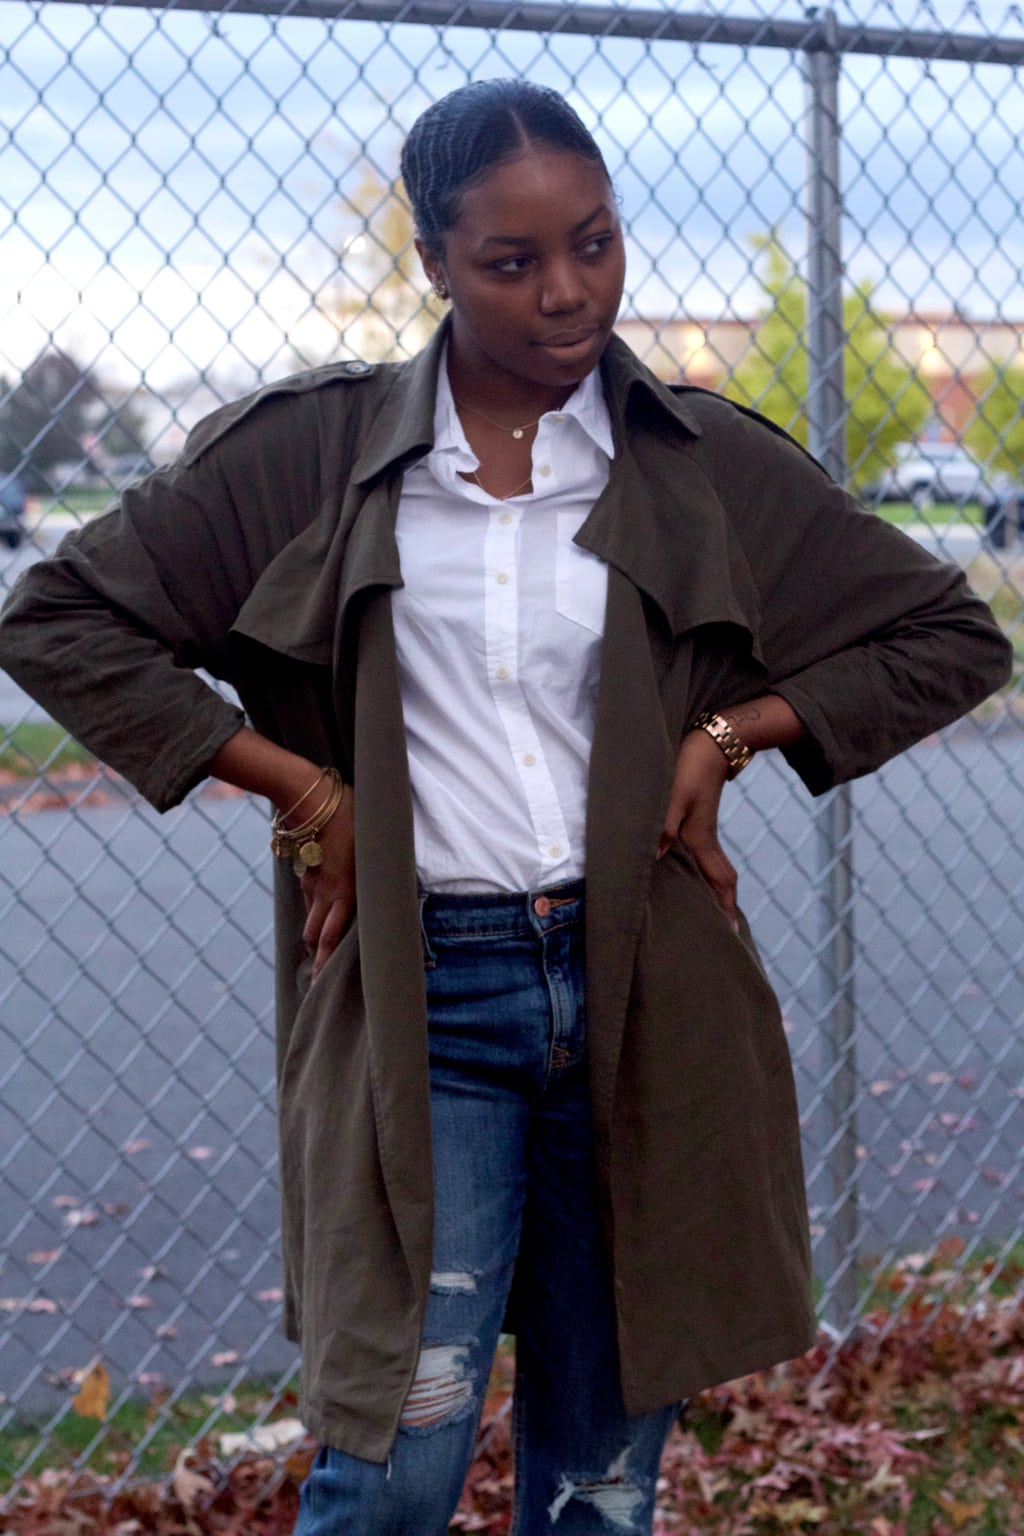 This olive green trench coat outfit is so classy! A green trench is worn with a button-up white blouse tucked in for a classic look.